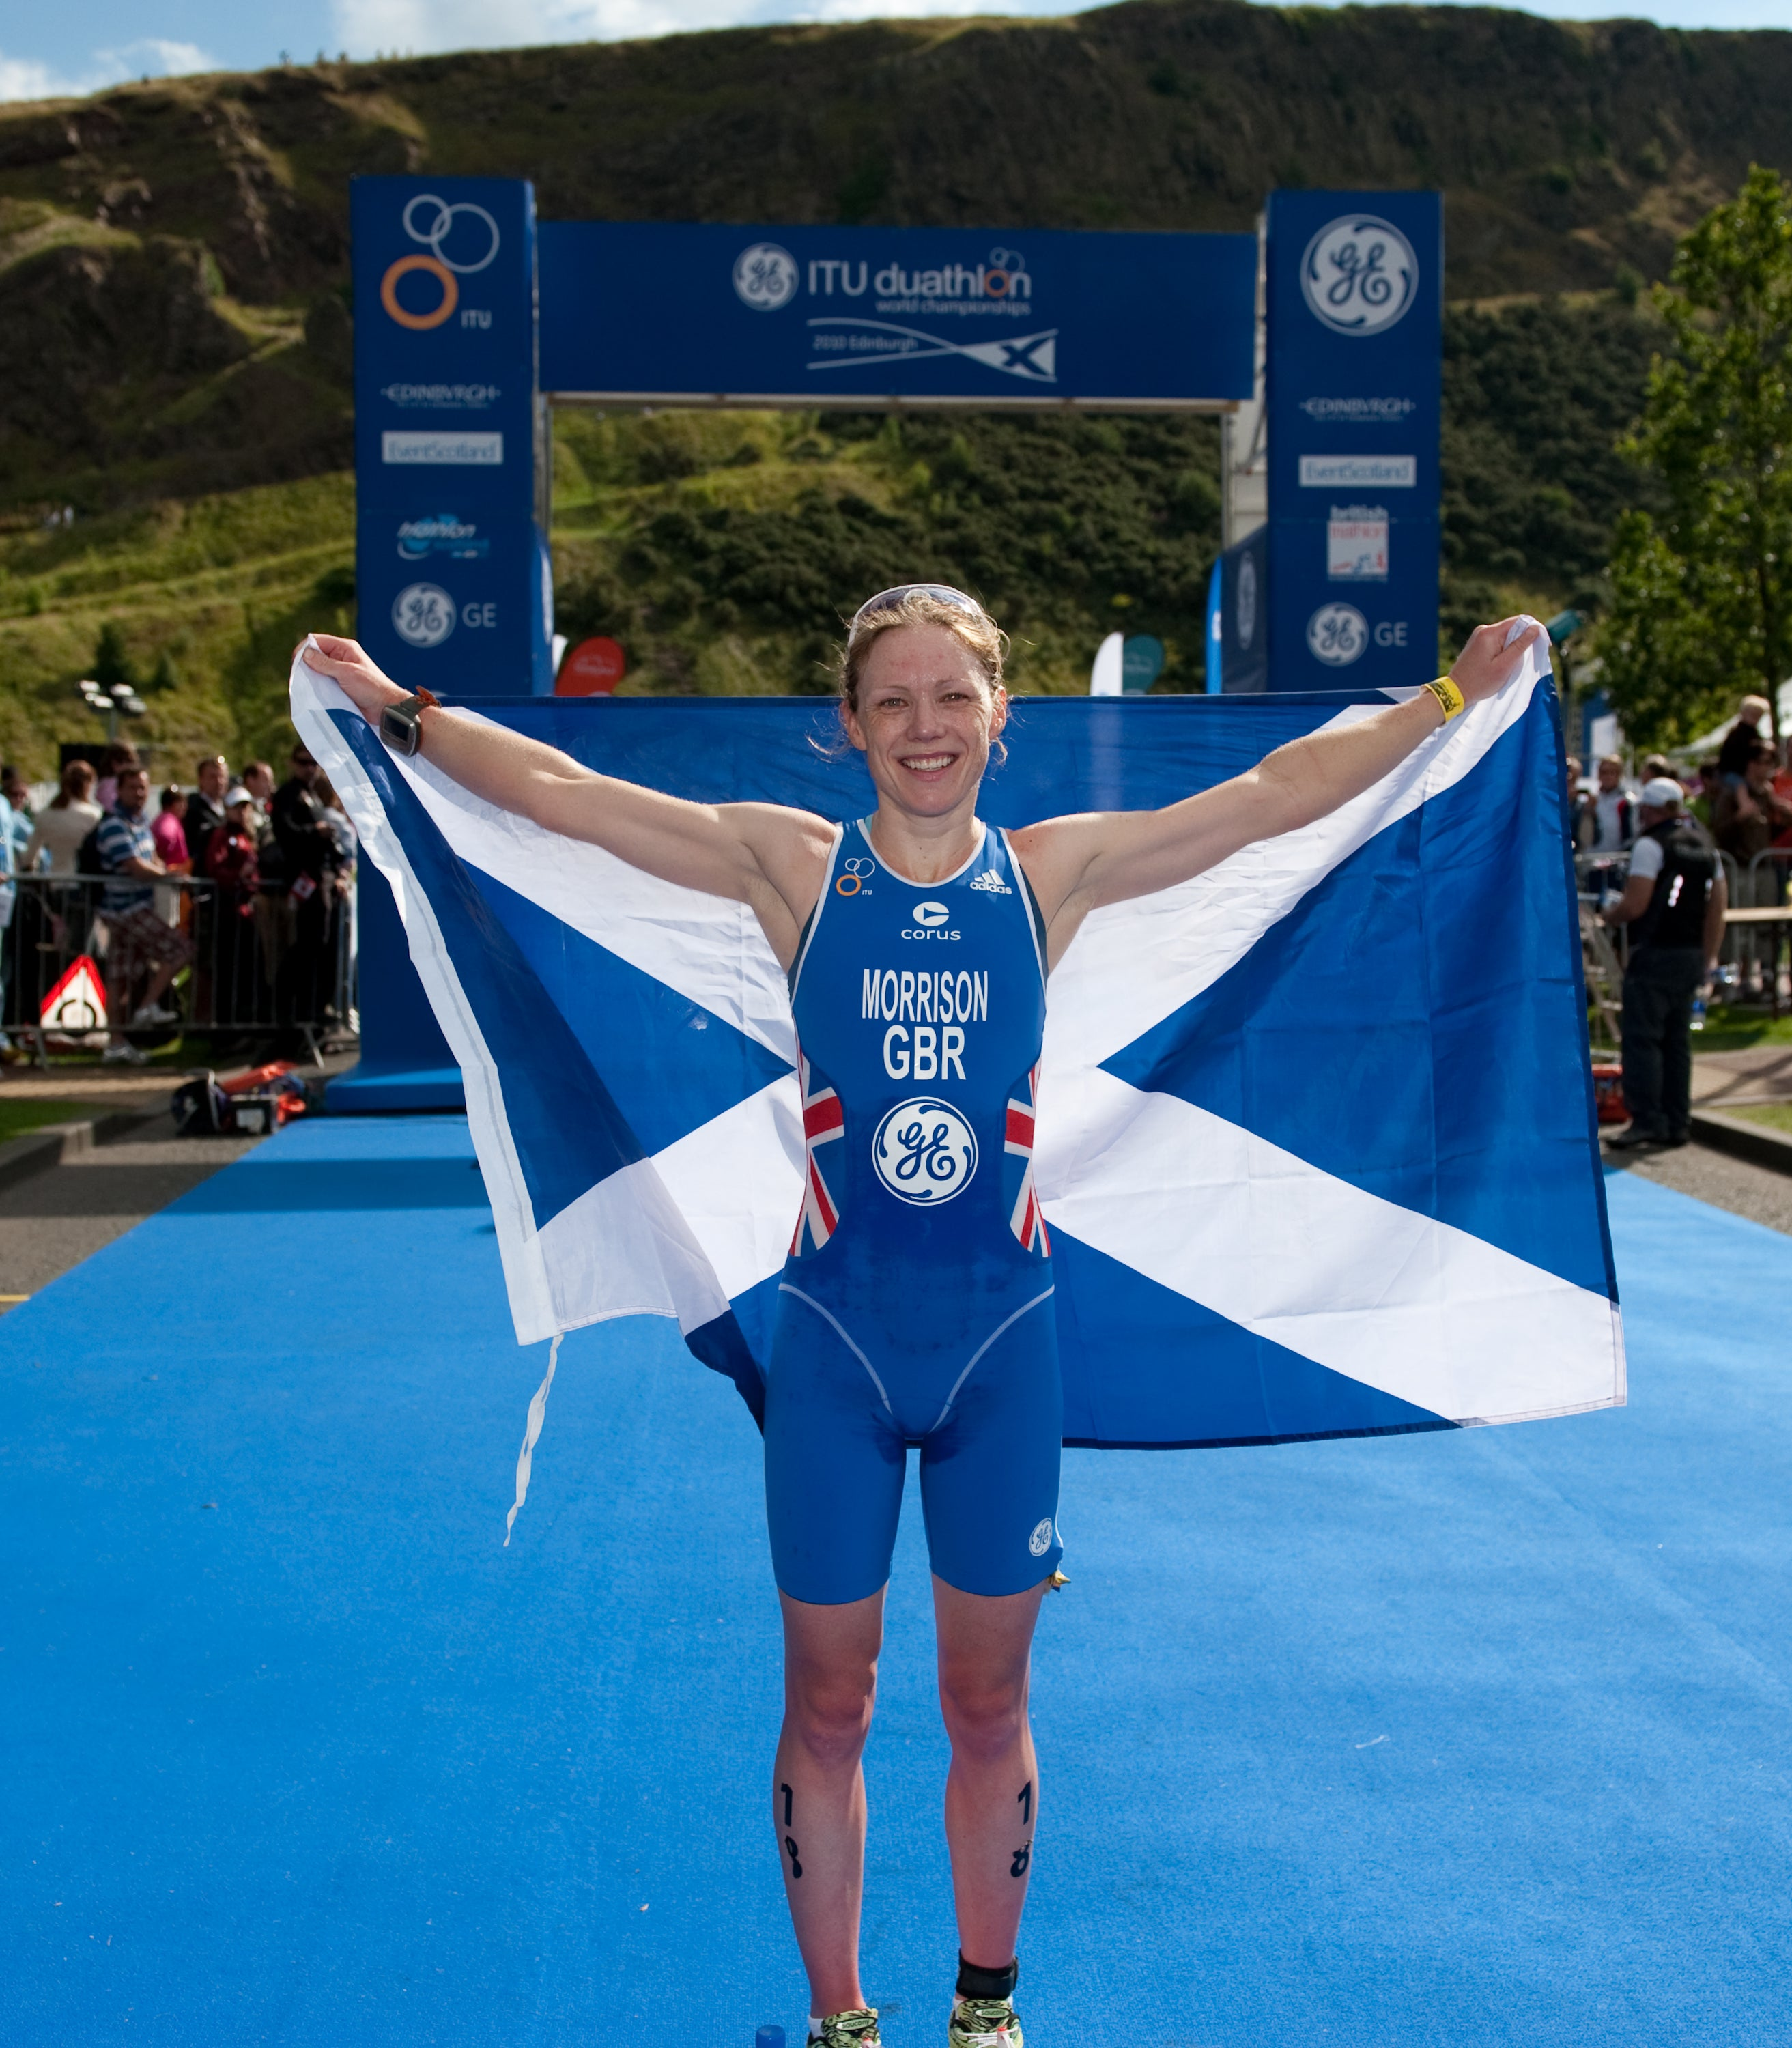 Morrison took the victory in front of a home crowd. Photo: Triathlon.org